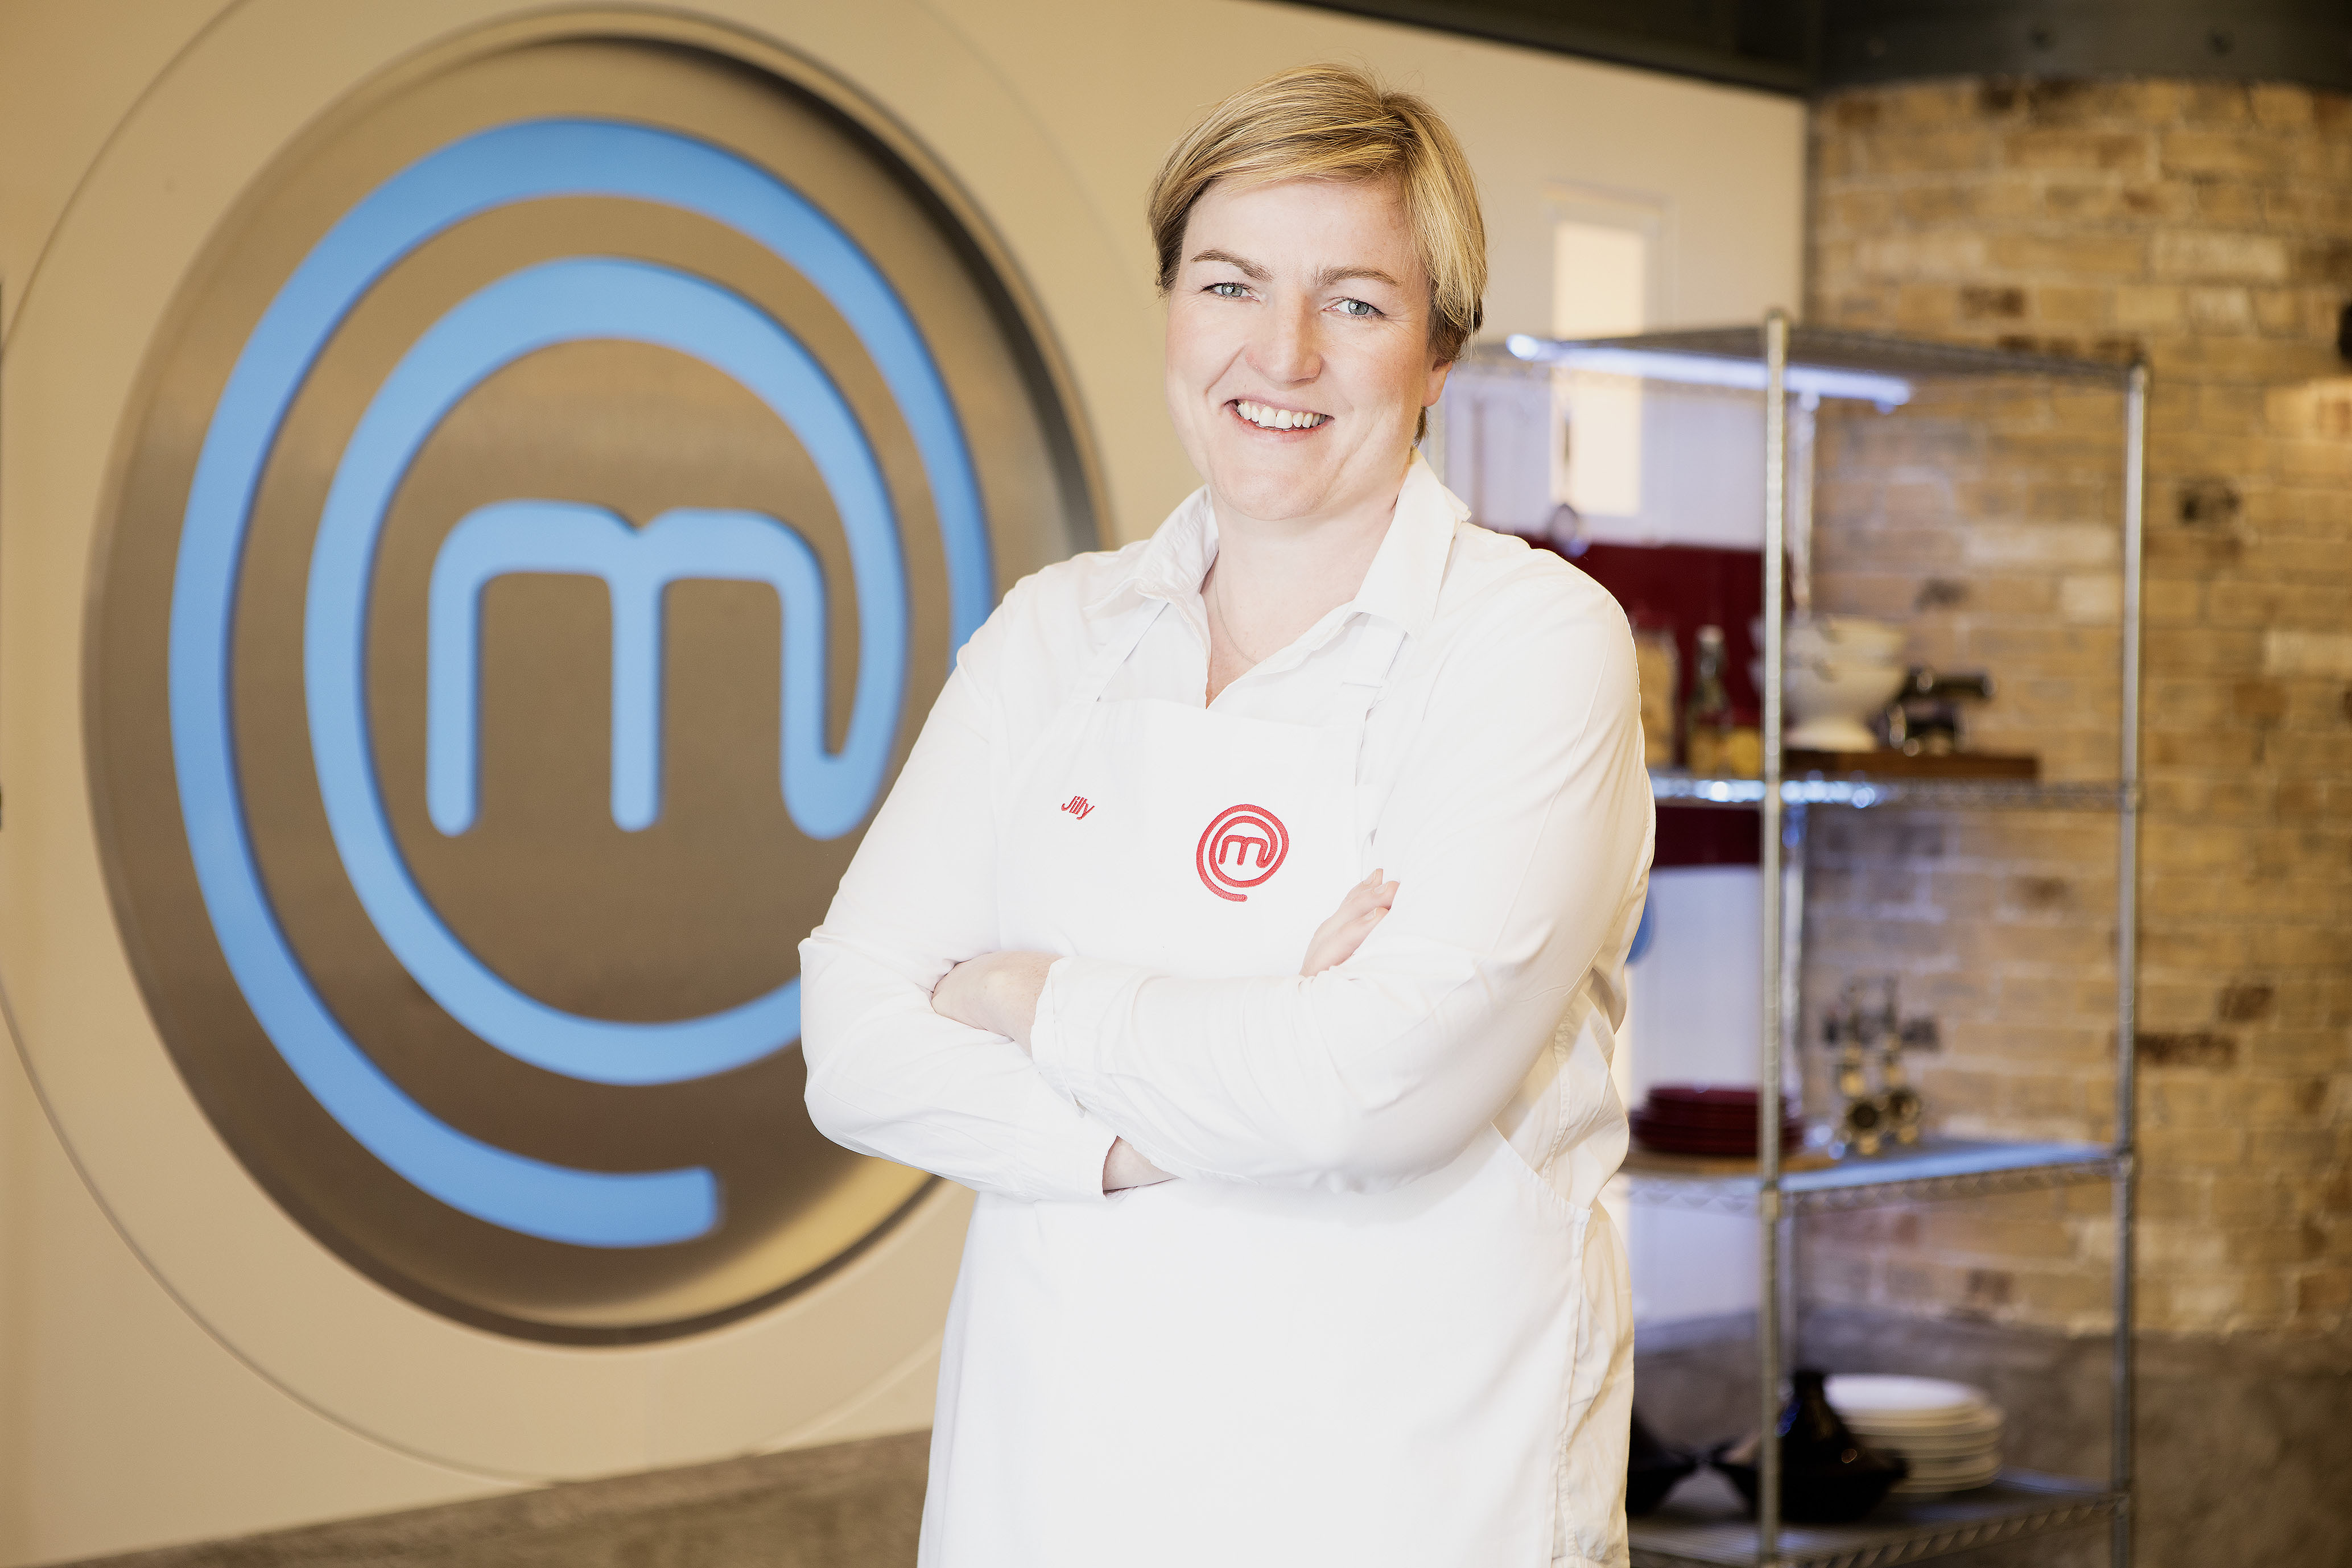 Jilly McCord made it to the final of this year's Masterchef